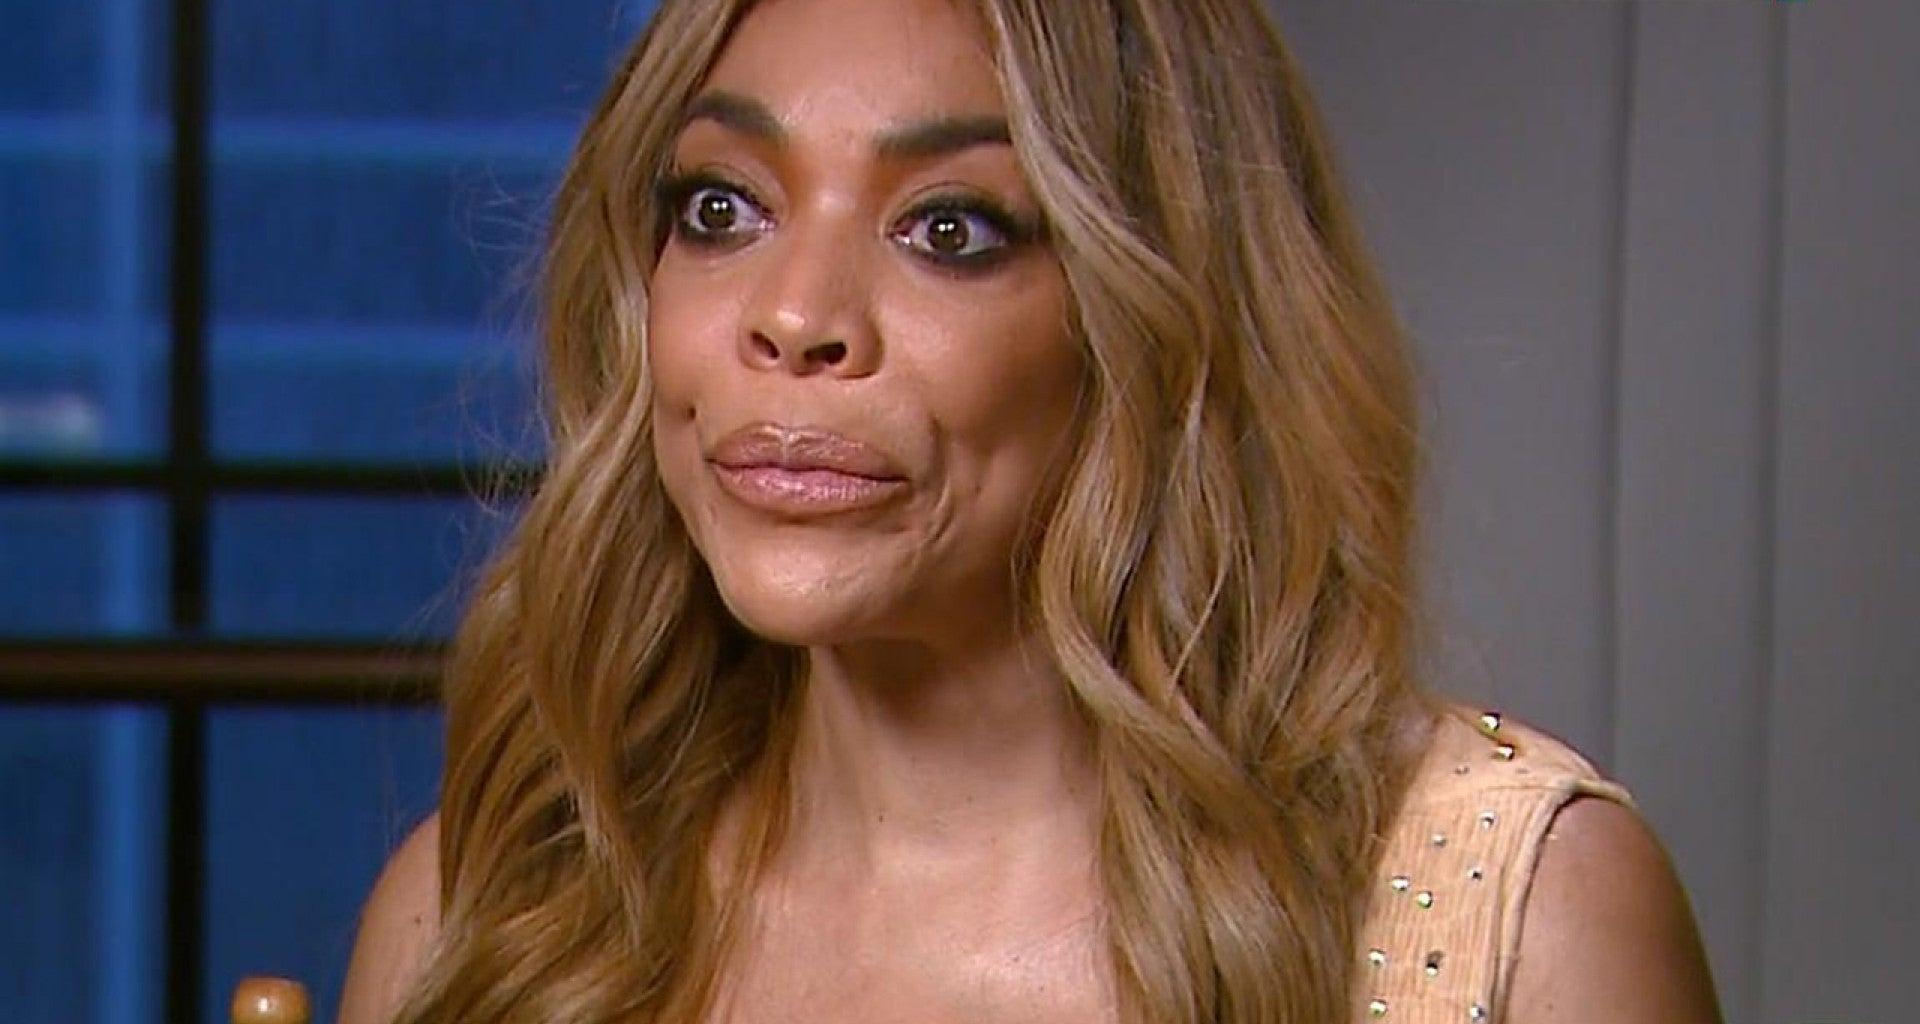 Wendy Williams Says She's Really Eager To Date After The Quarantine - Reveals She's Found A Very Special 'Love Interest!'